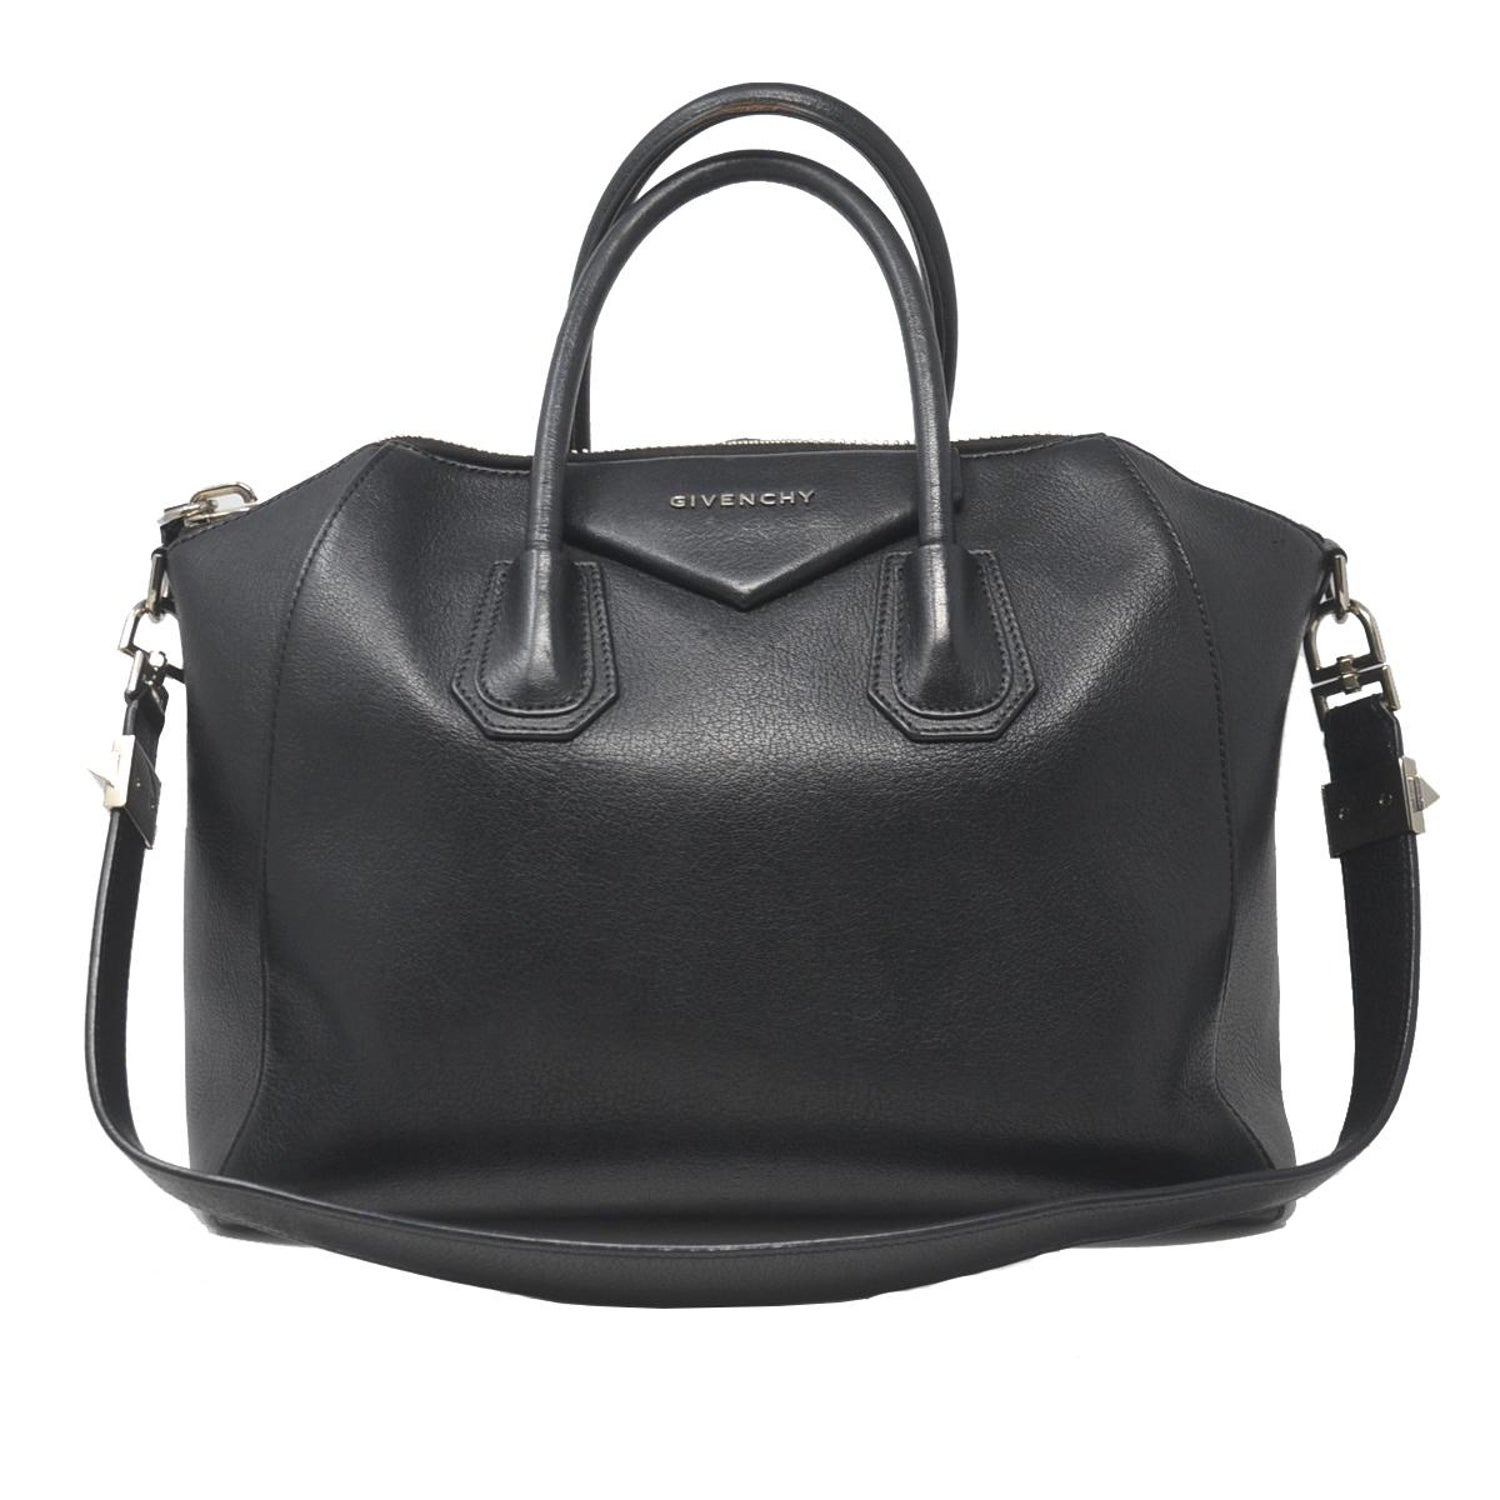 62f4e8cfc2 Givenchy Antigona Medium Black Leather Tote Handbag For Sale at 1stdibs